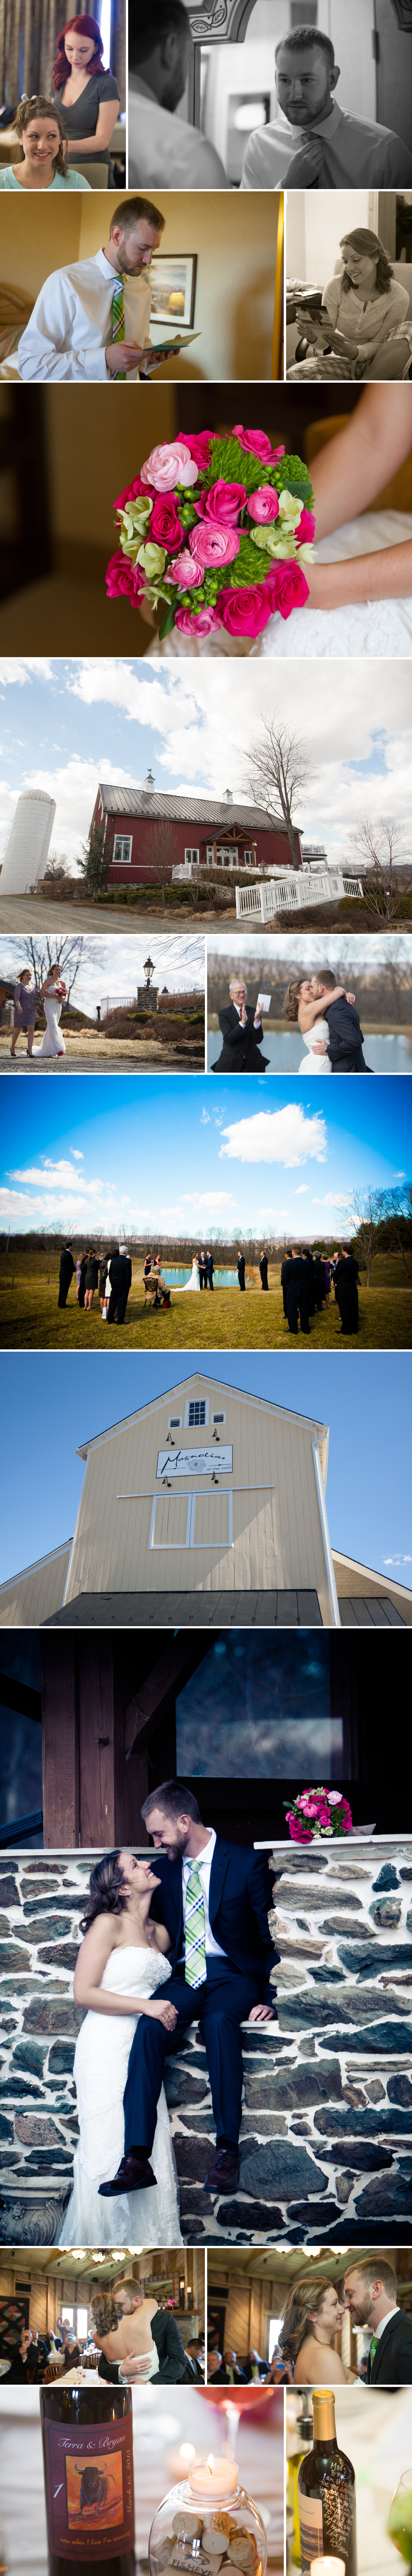 loudoun county wedding